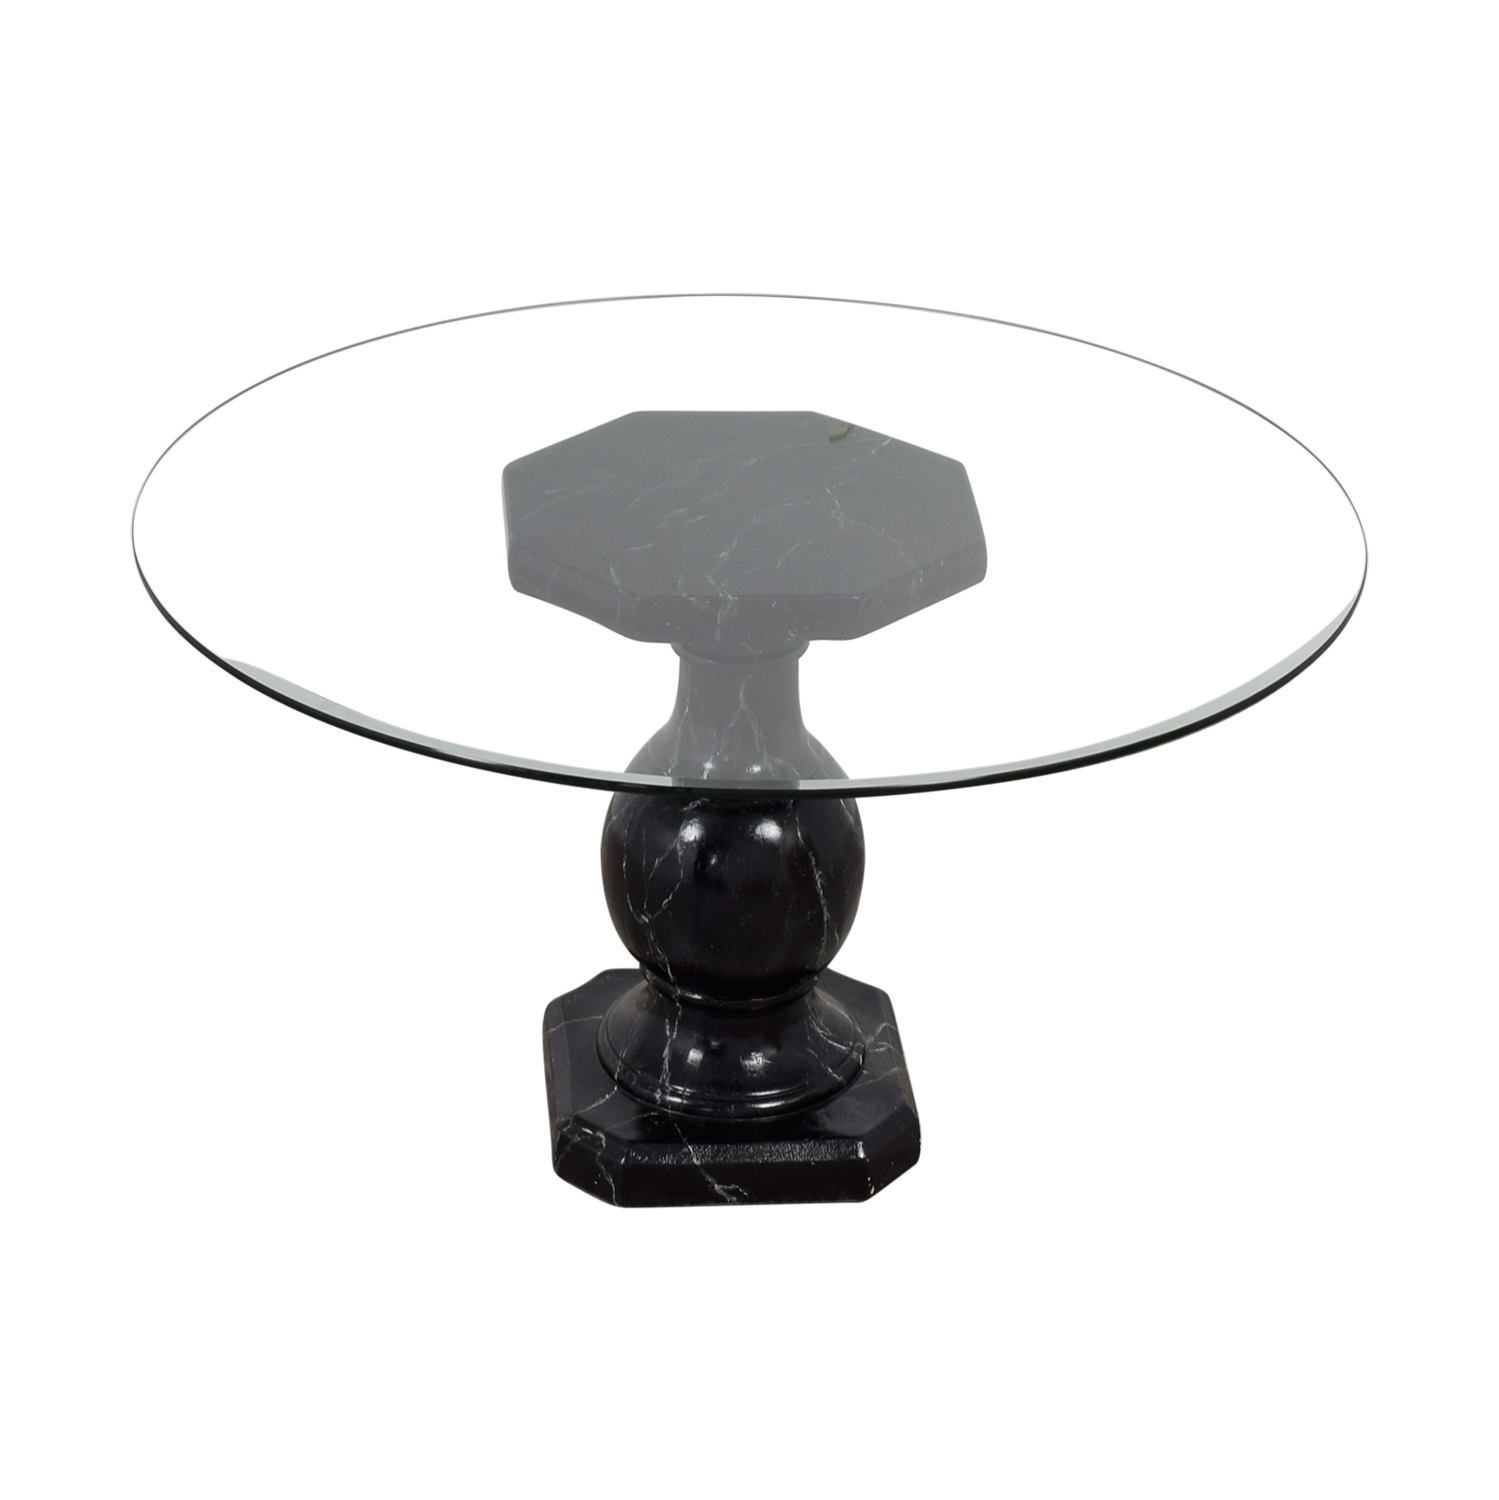 Ballard Designs Dining Table with Glass Top Ballard Designs